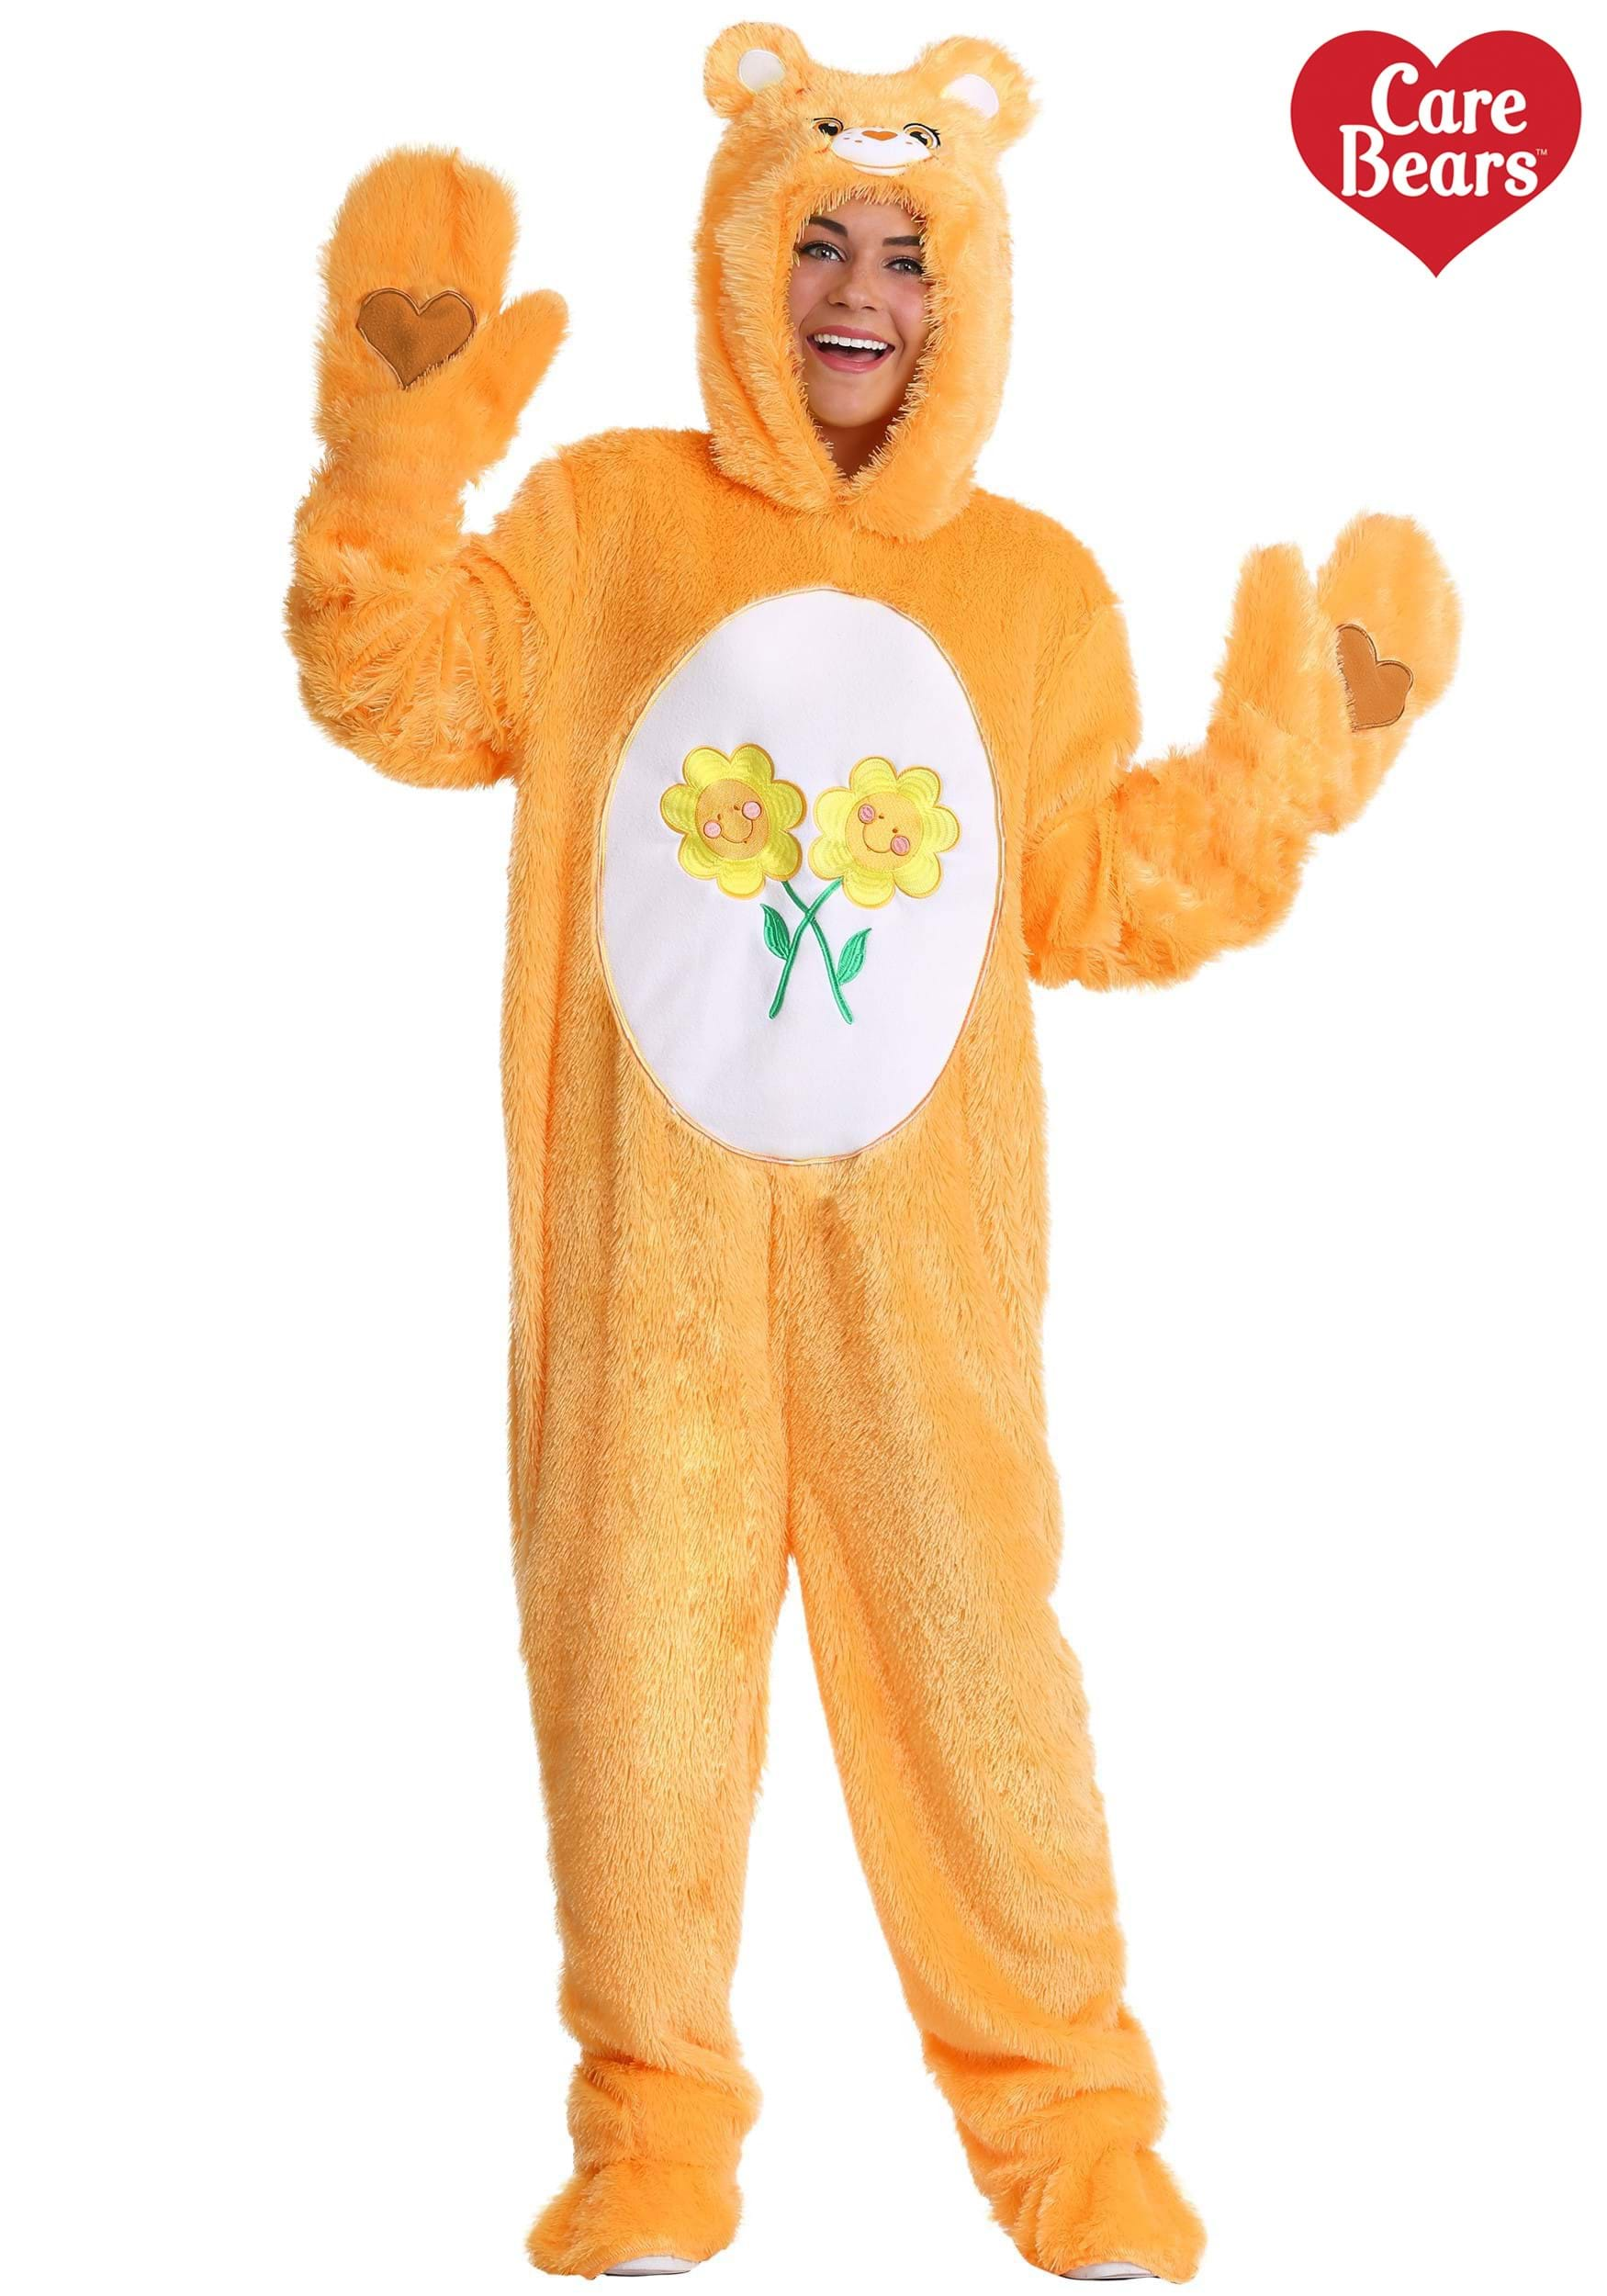 Care Bears Friend Bear Adult Costume